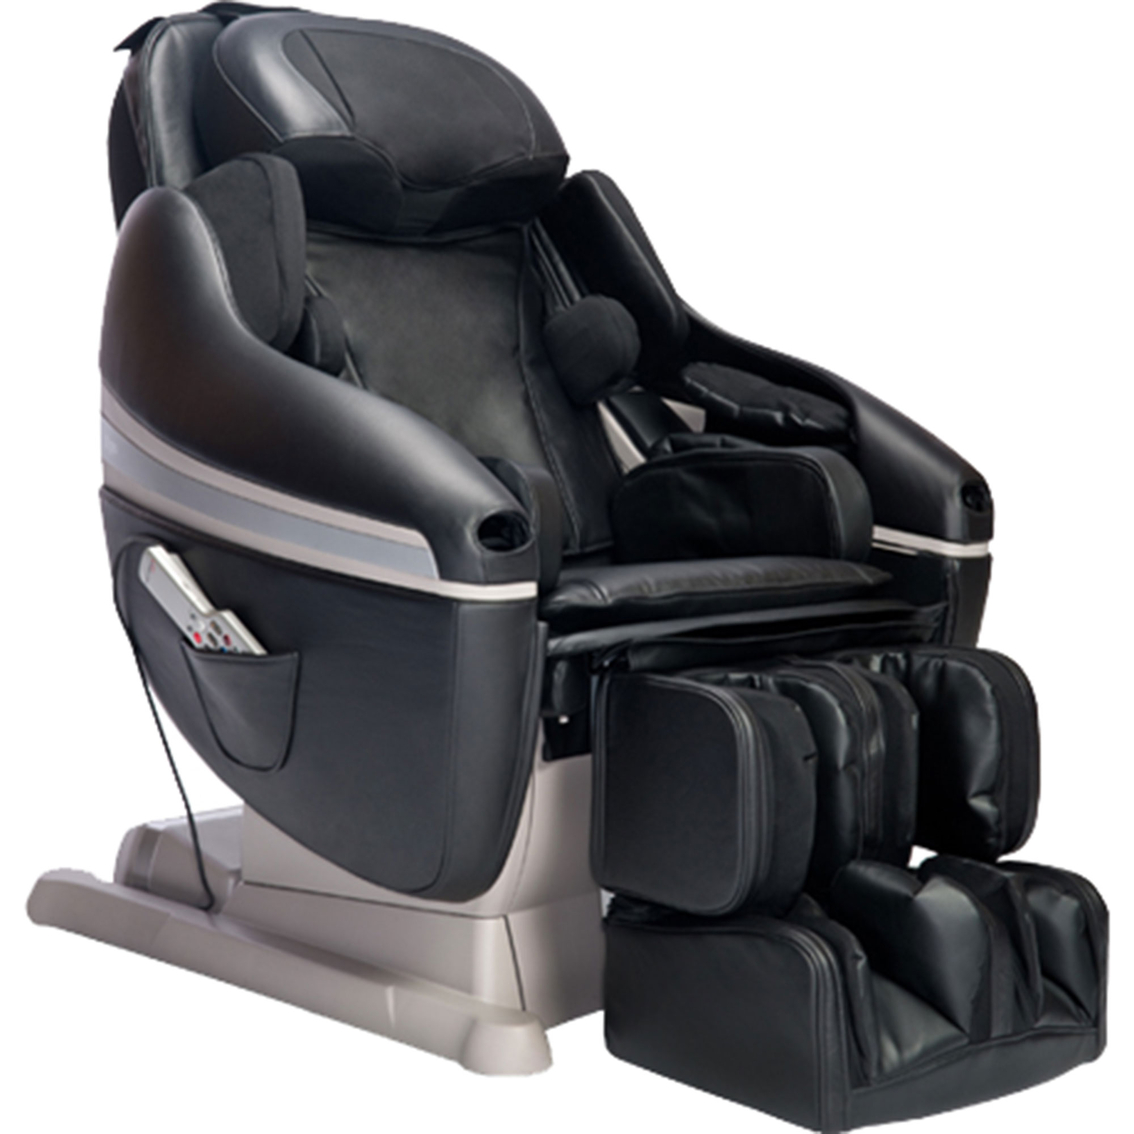 Inada Chair Inada Sogno Dreamwave Massage Chair Black Chairs